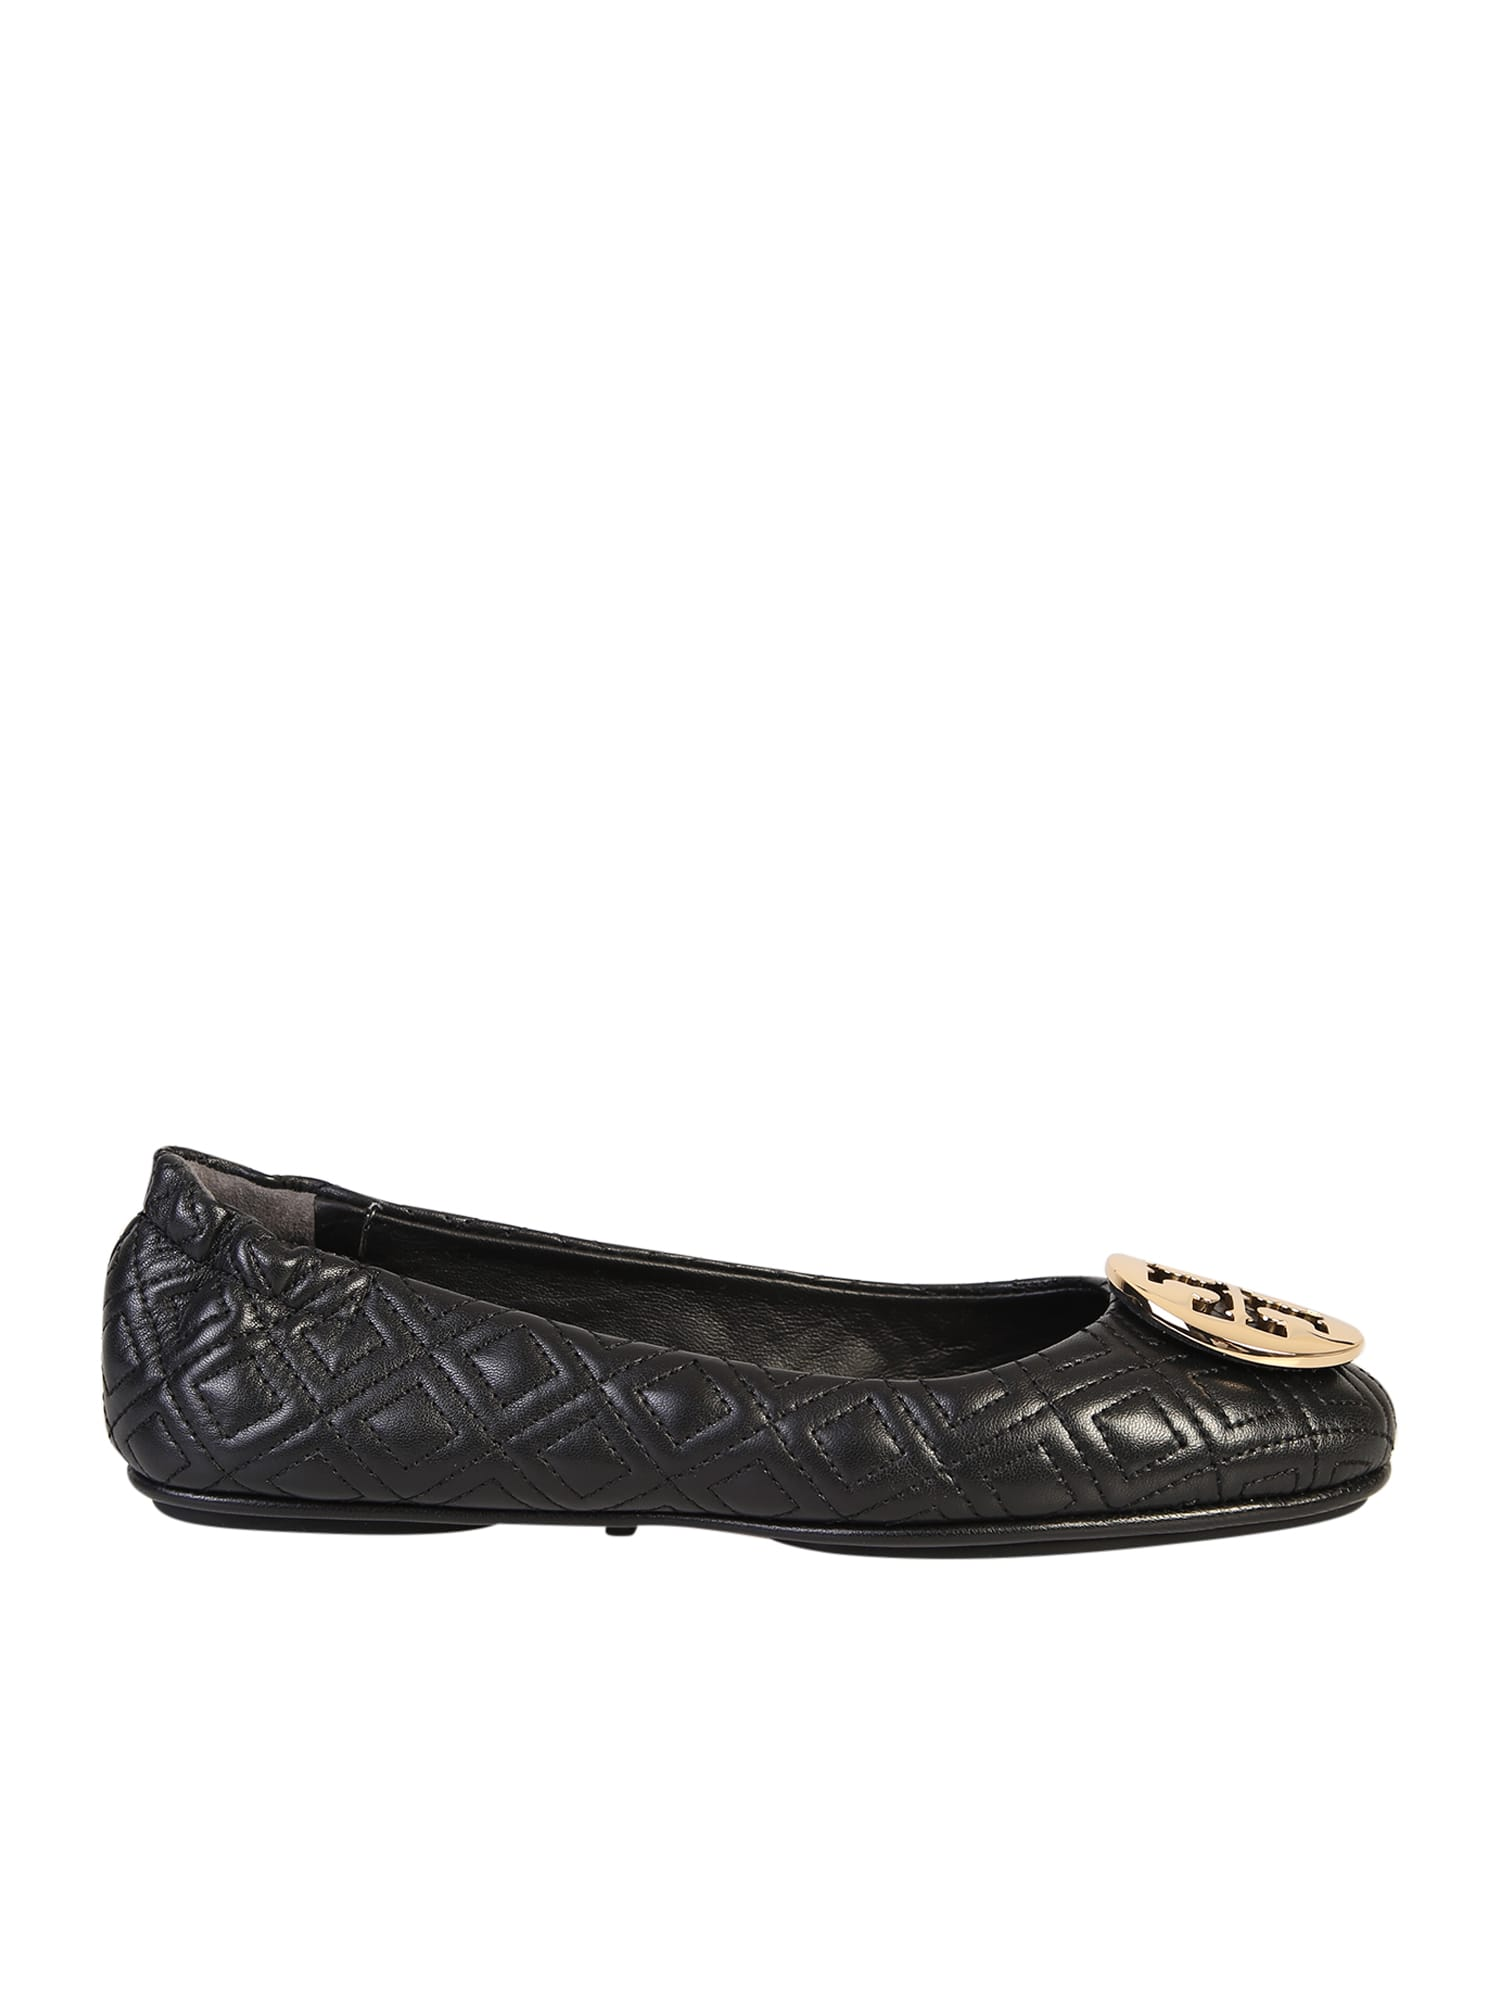 Buy Tory Burch Black Minnie Ballerina Flats online, shop Tory Burch shoes with free shipping